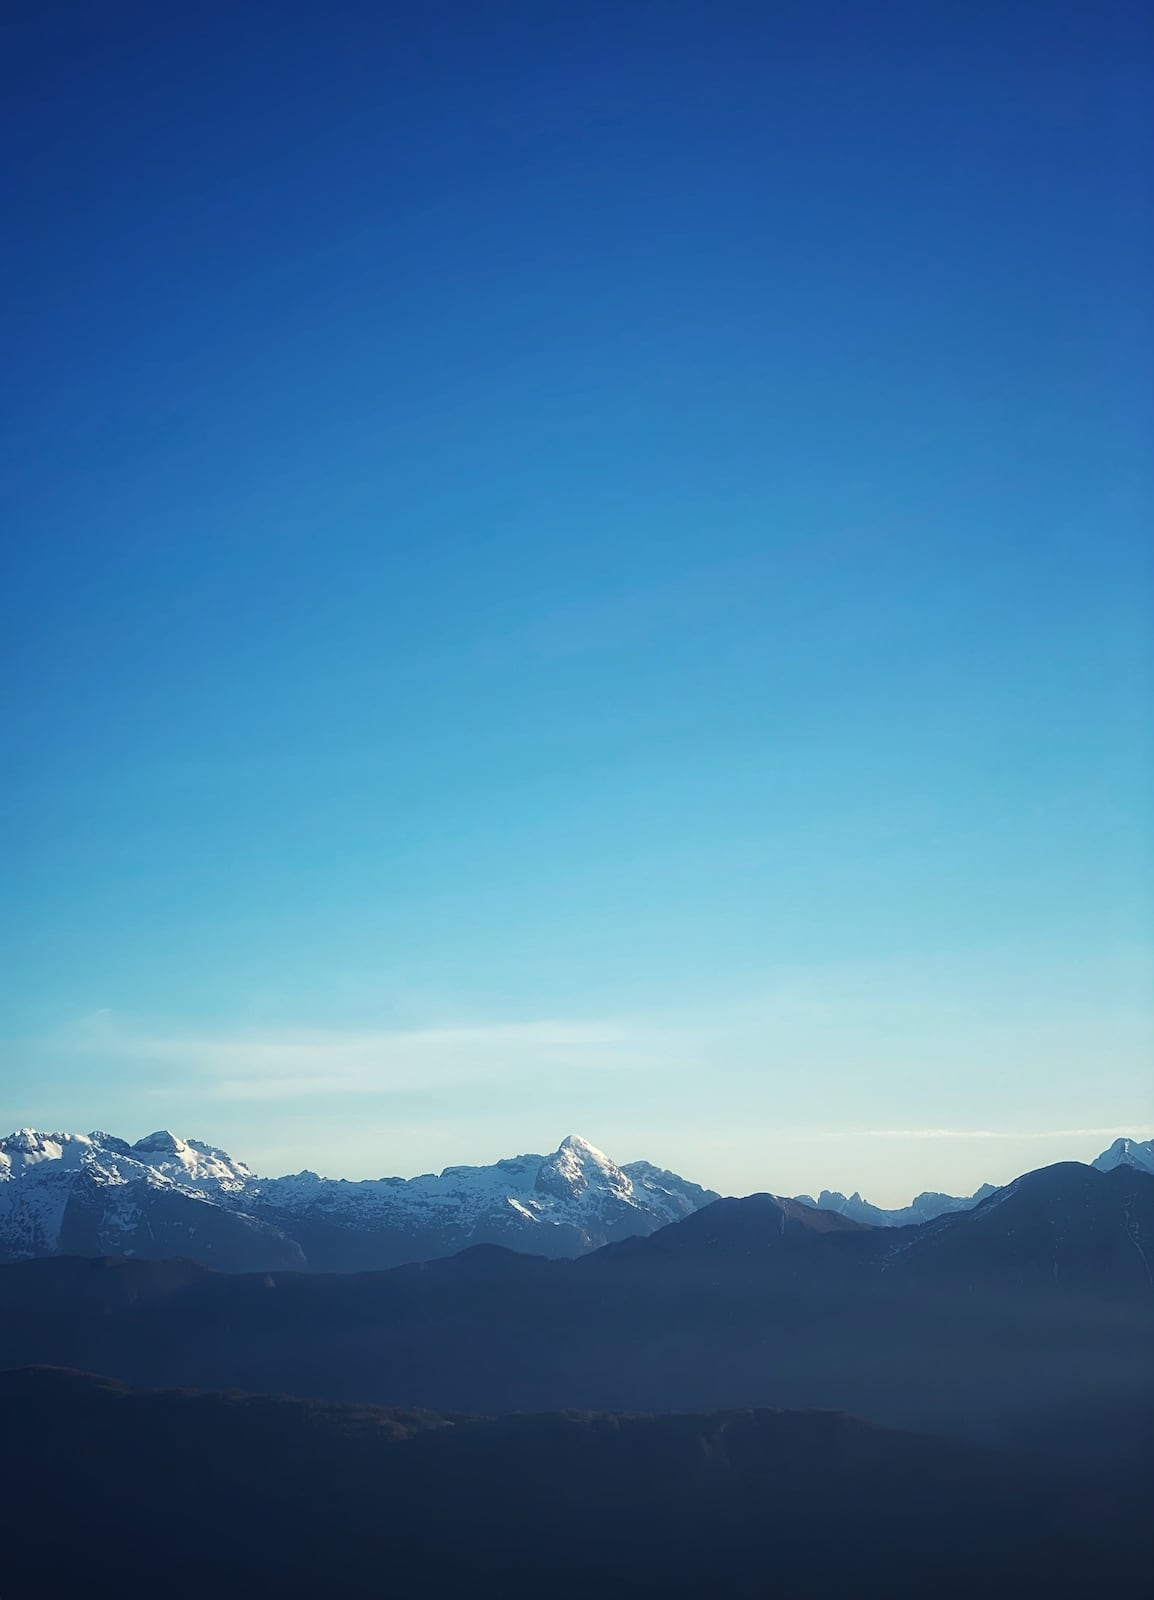 A clear blue sky early in the morning over a mountain range